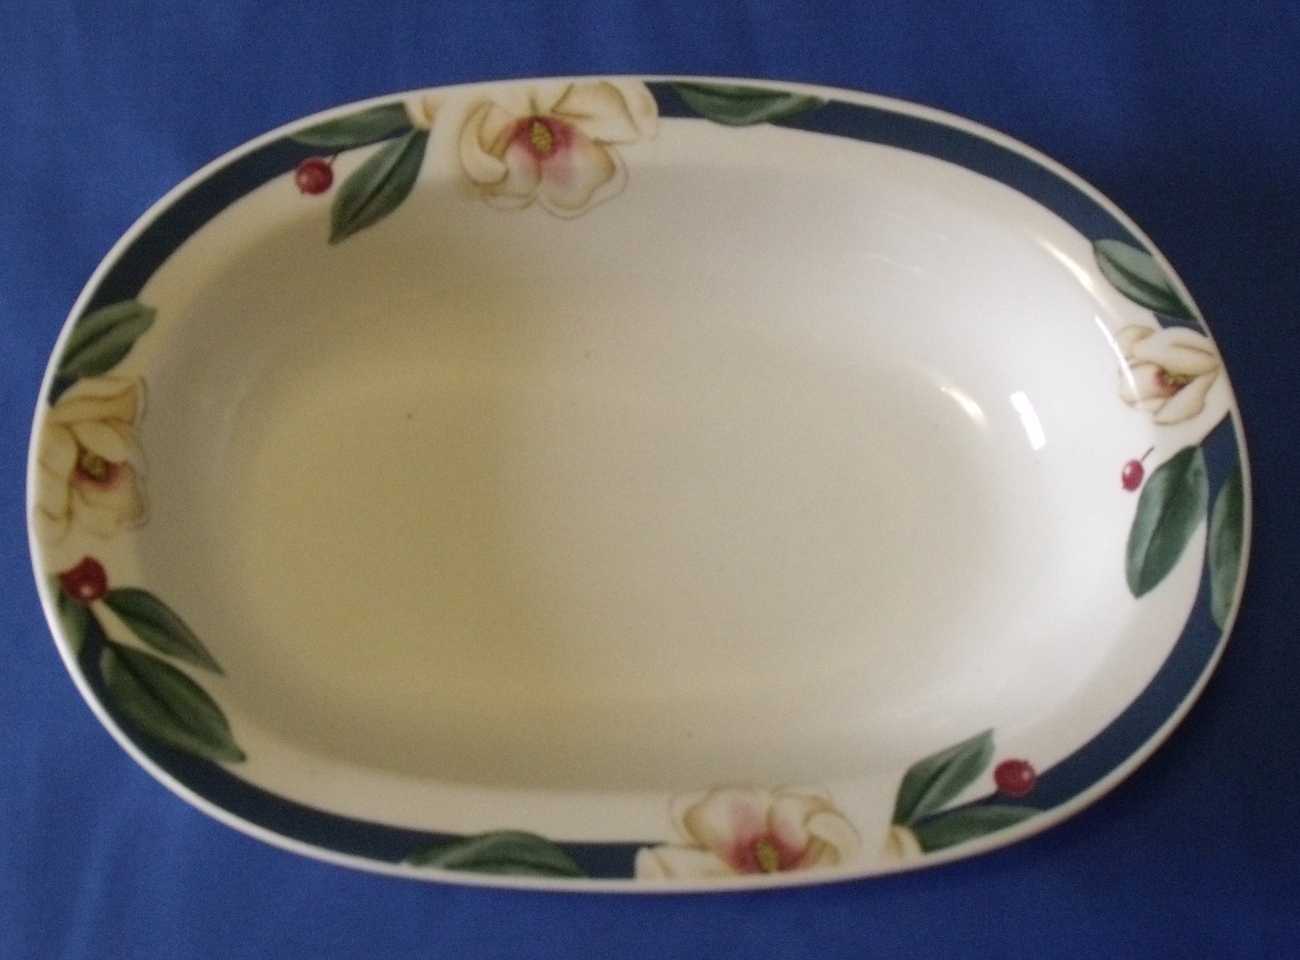 Savannah_grove_oval_bowl_top